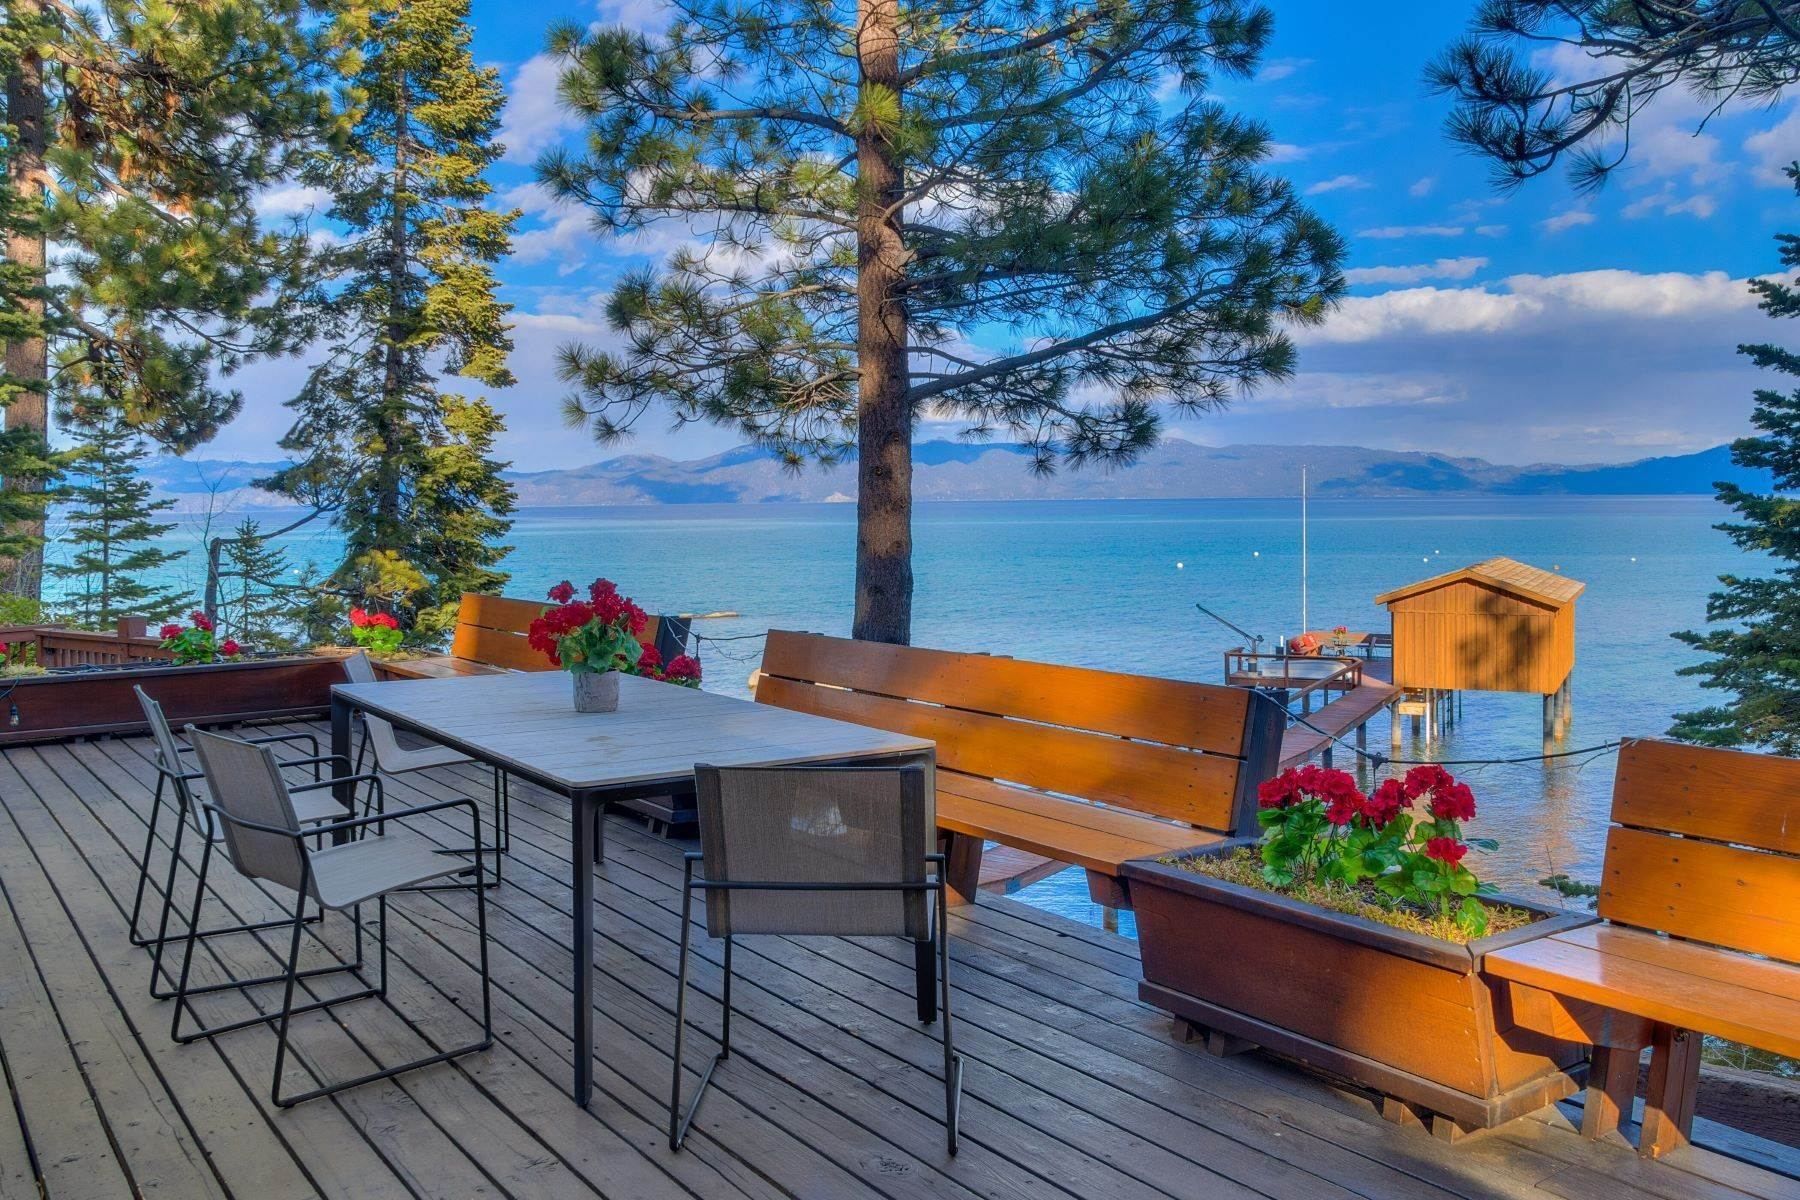 Single Family Homes for Active at Boat House with Deck and Sunshine 8645 Beach Lane Tahoma, California 96142 United States